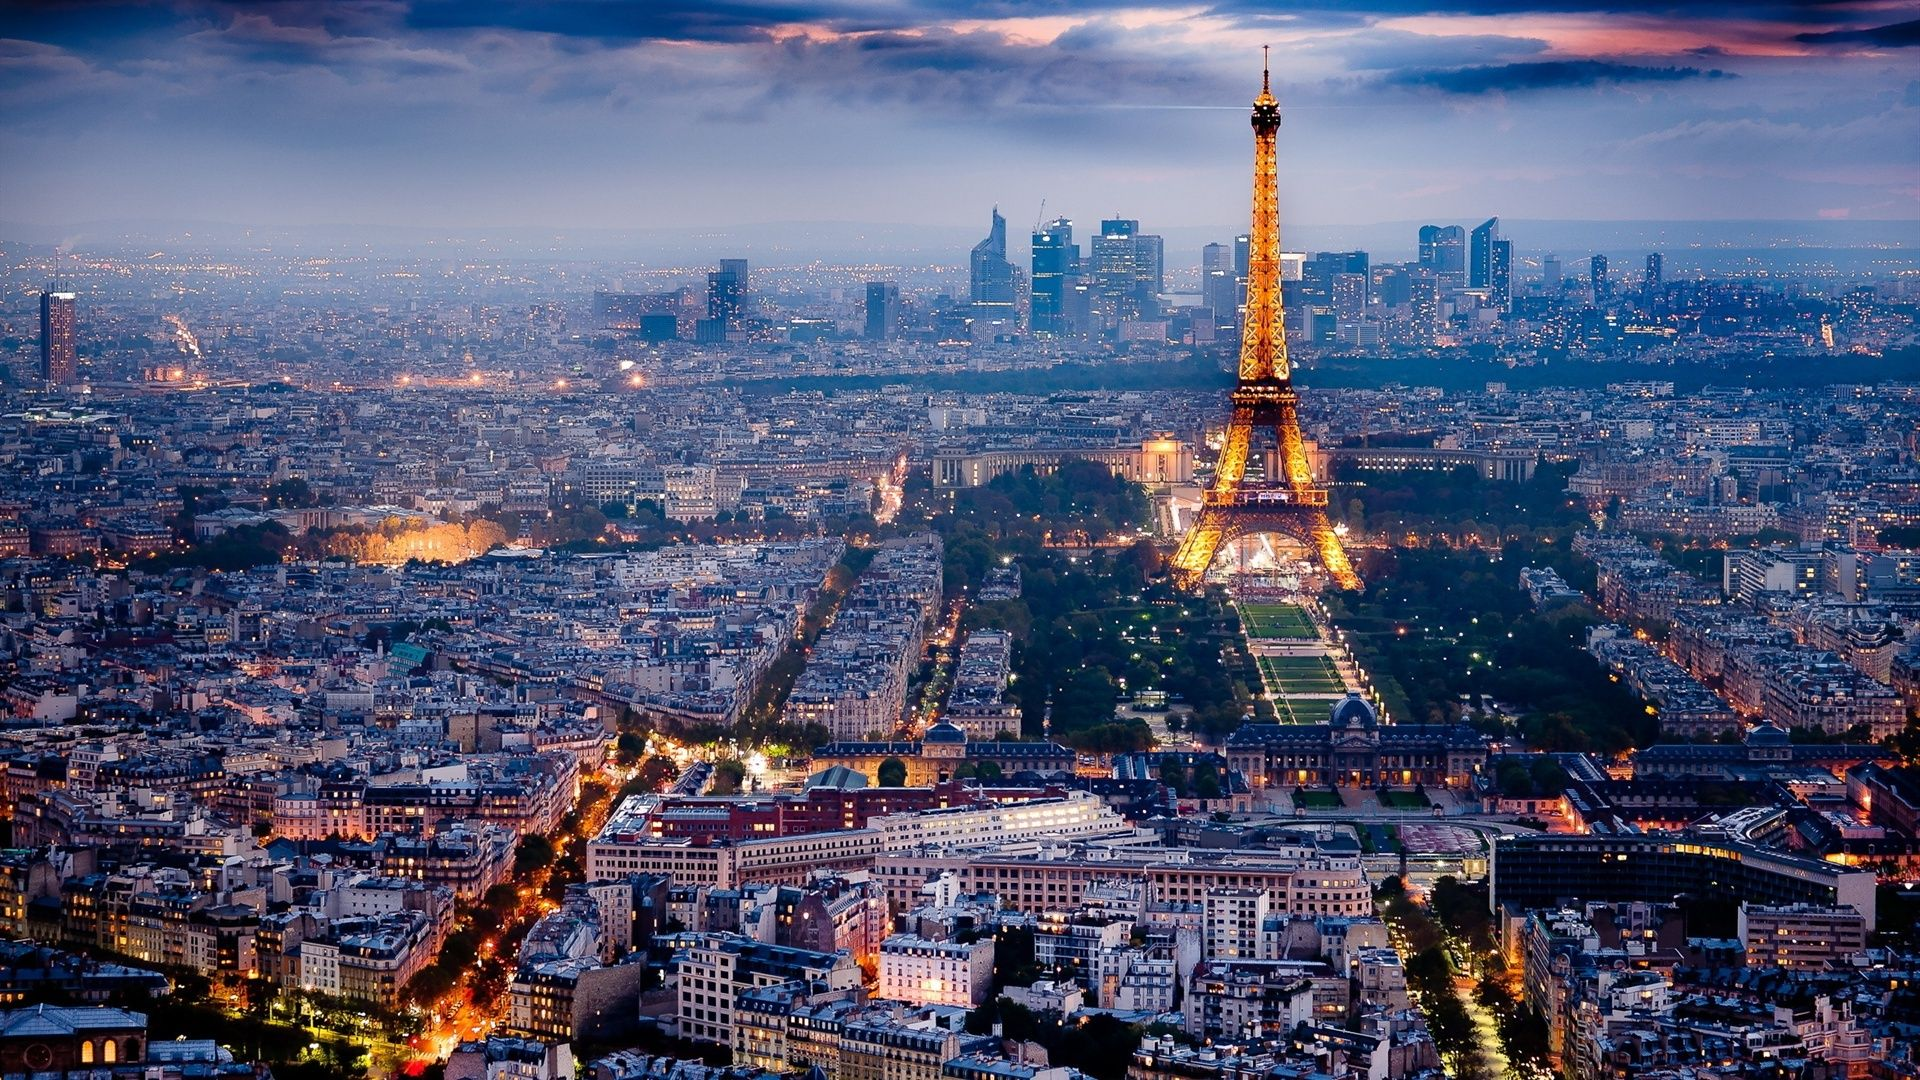 paris hd images : get free top quality paris hd images for your